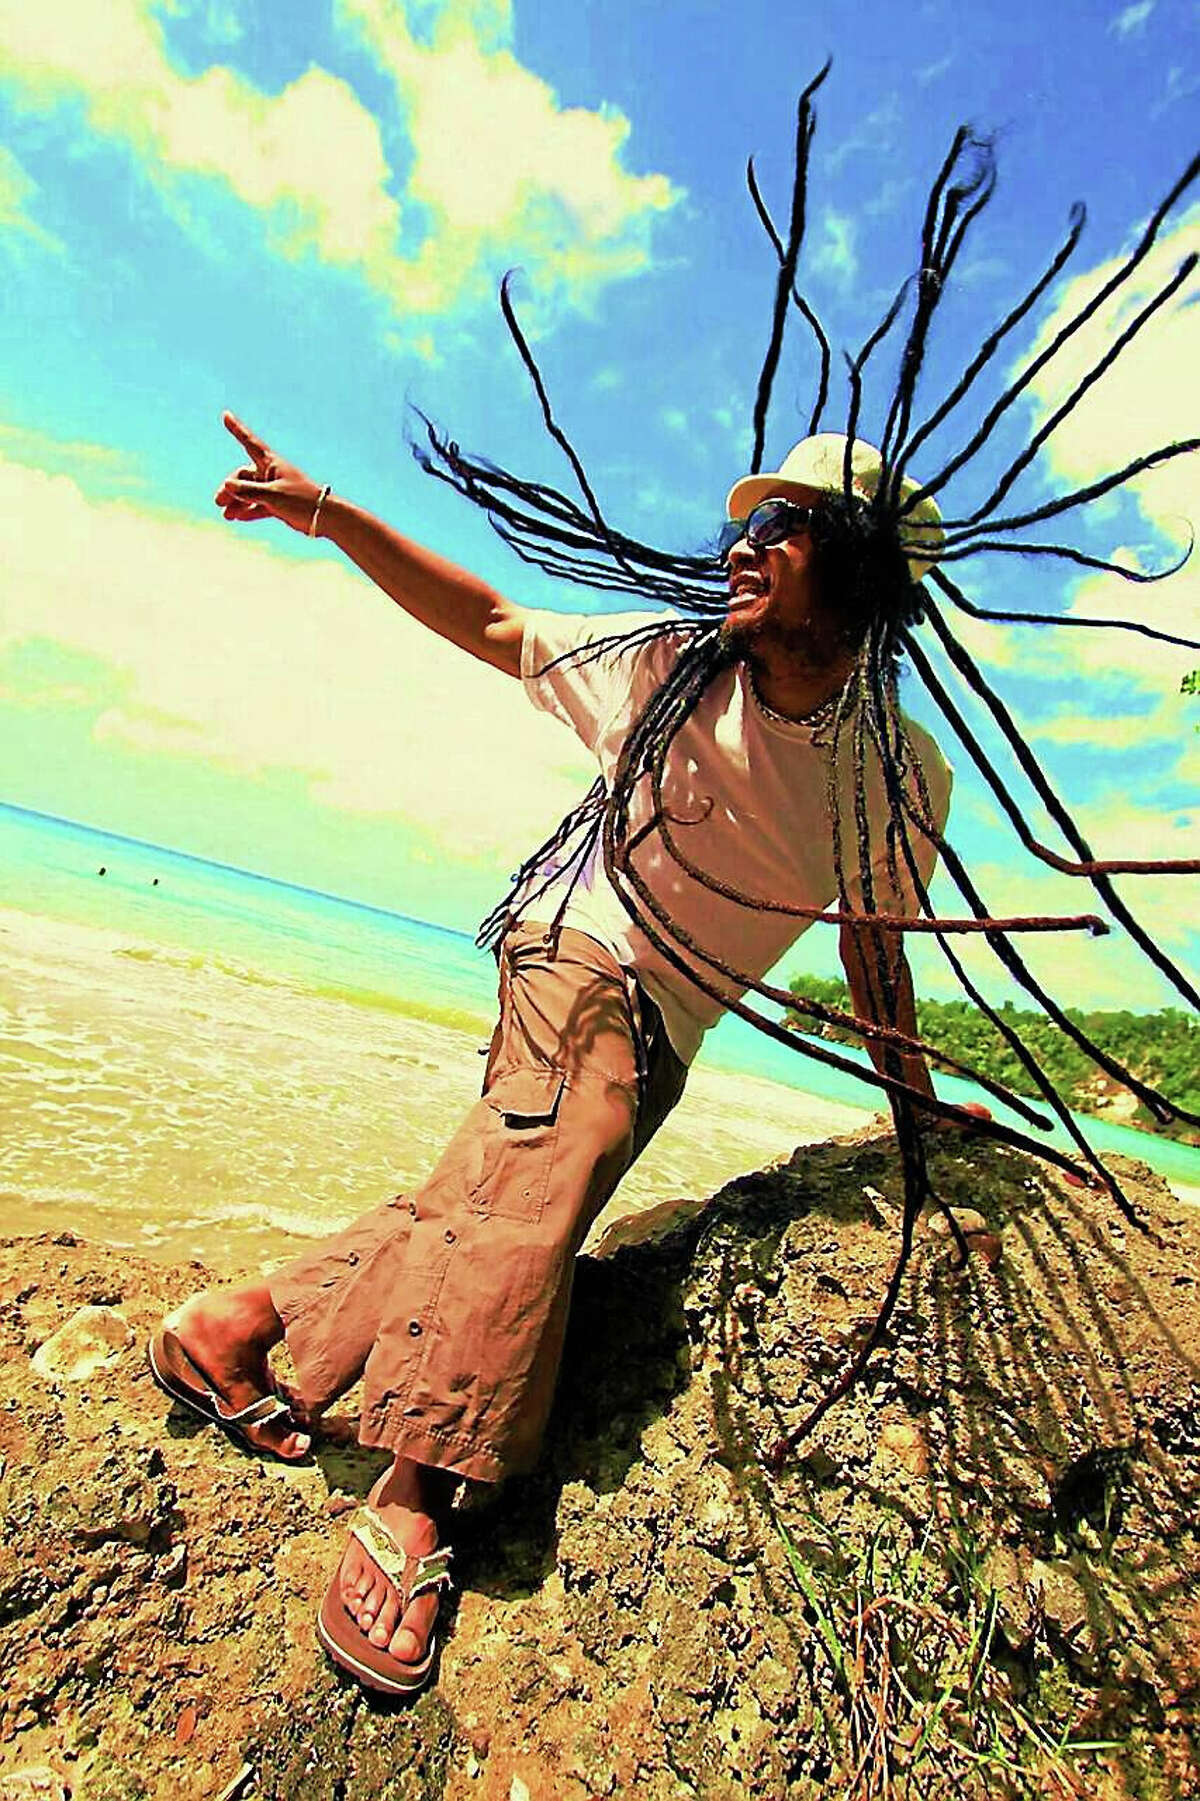 Contributed photoJunior Marvin is a performer in the upcoming Bob Marley show at the Palace Theater in Waterbury.